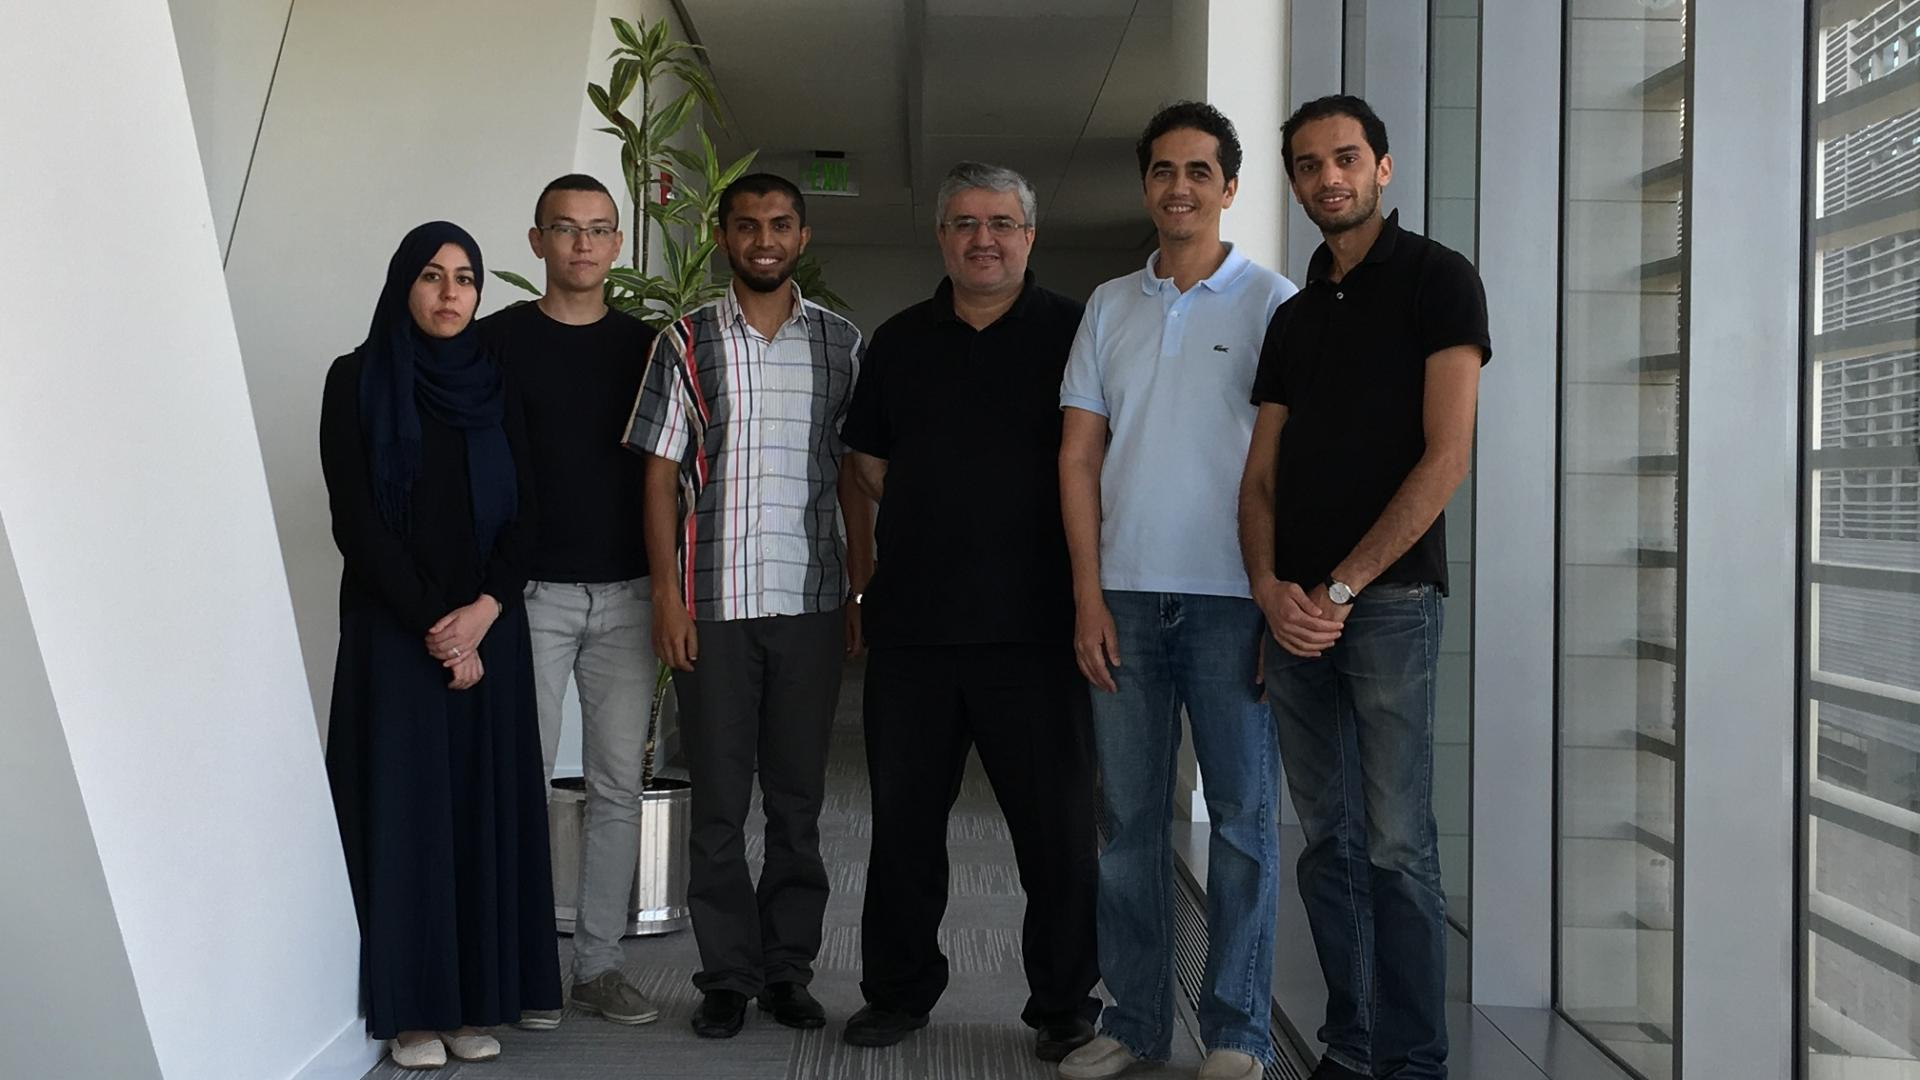 Professor Alouini with CTL members; from right lo left: Mohamed Ridha Znaidi | Dr. Zouheir Rezki | Prof. Alouini | Lokman Sboui | Yerzhan Sapenov | Amal Hyadi